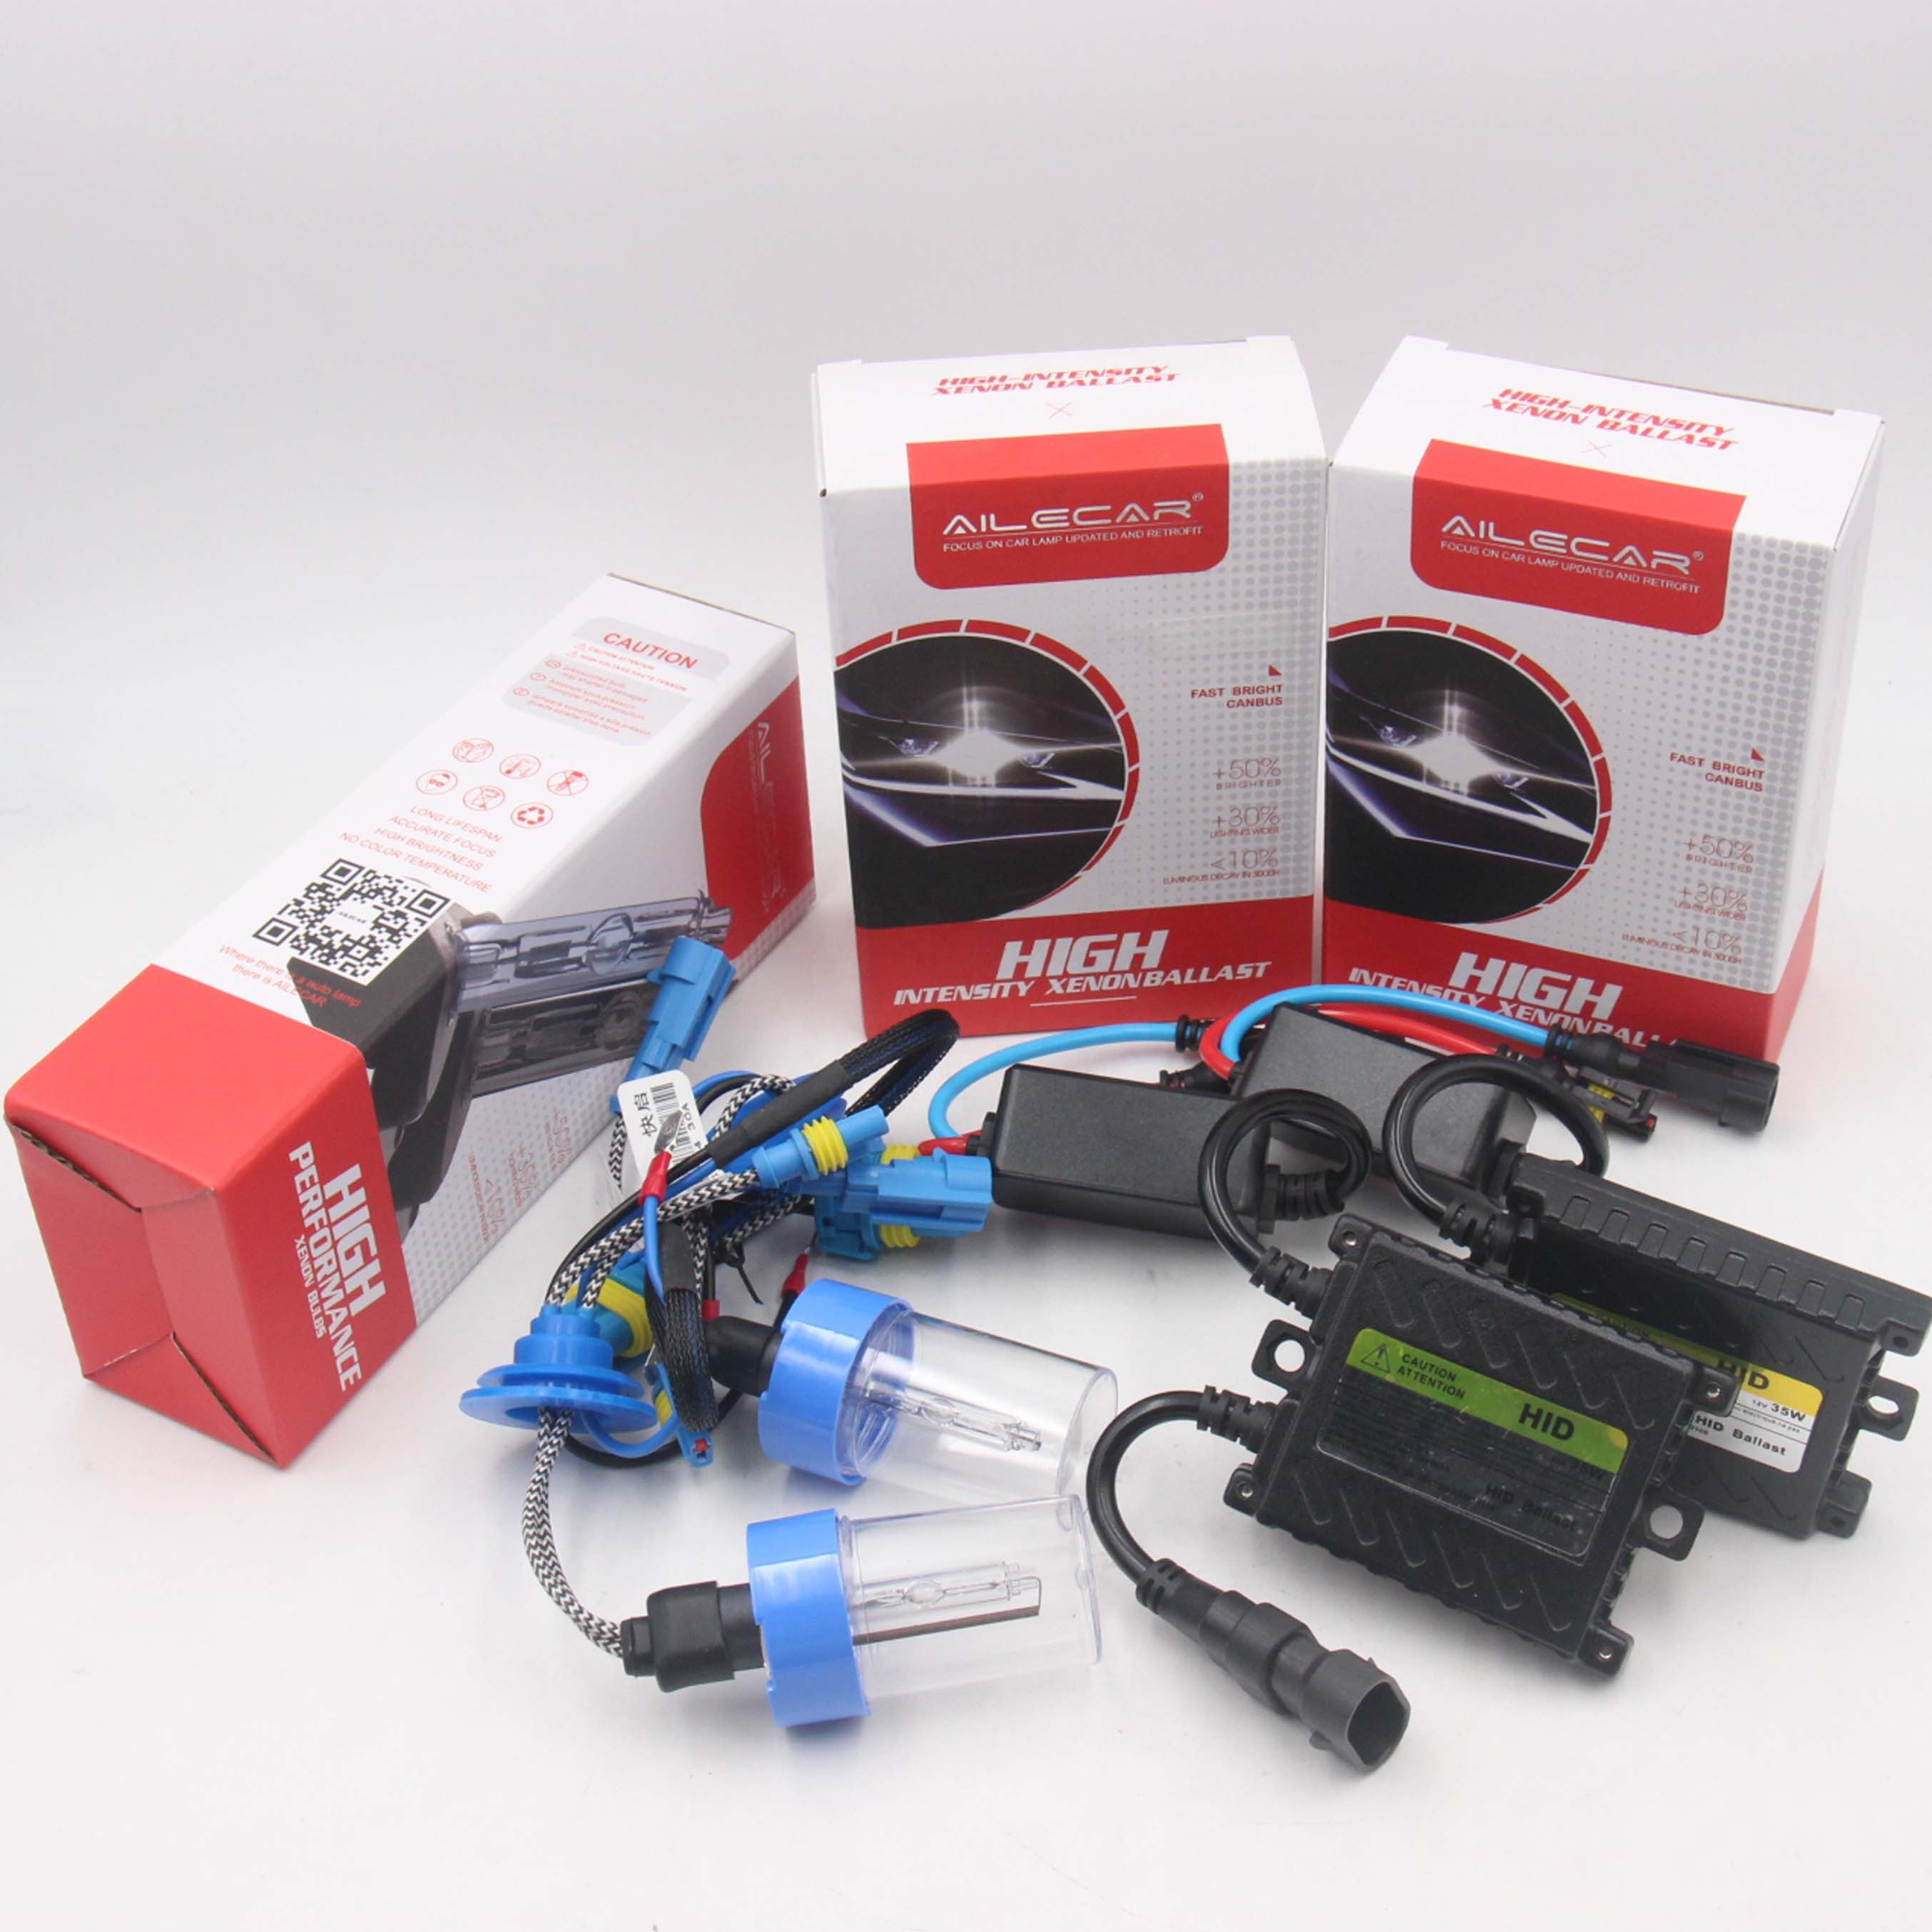 Fast Start 35W H1/H7/9005/9006 <strong>Hid</strong> Xenon Conversion <strong>Kit</strong> 4300k/5000k/6000k